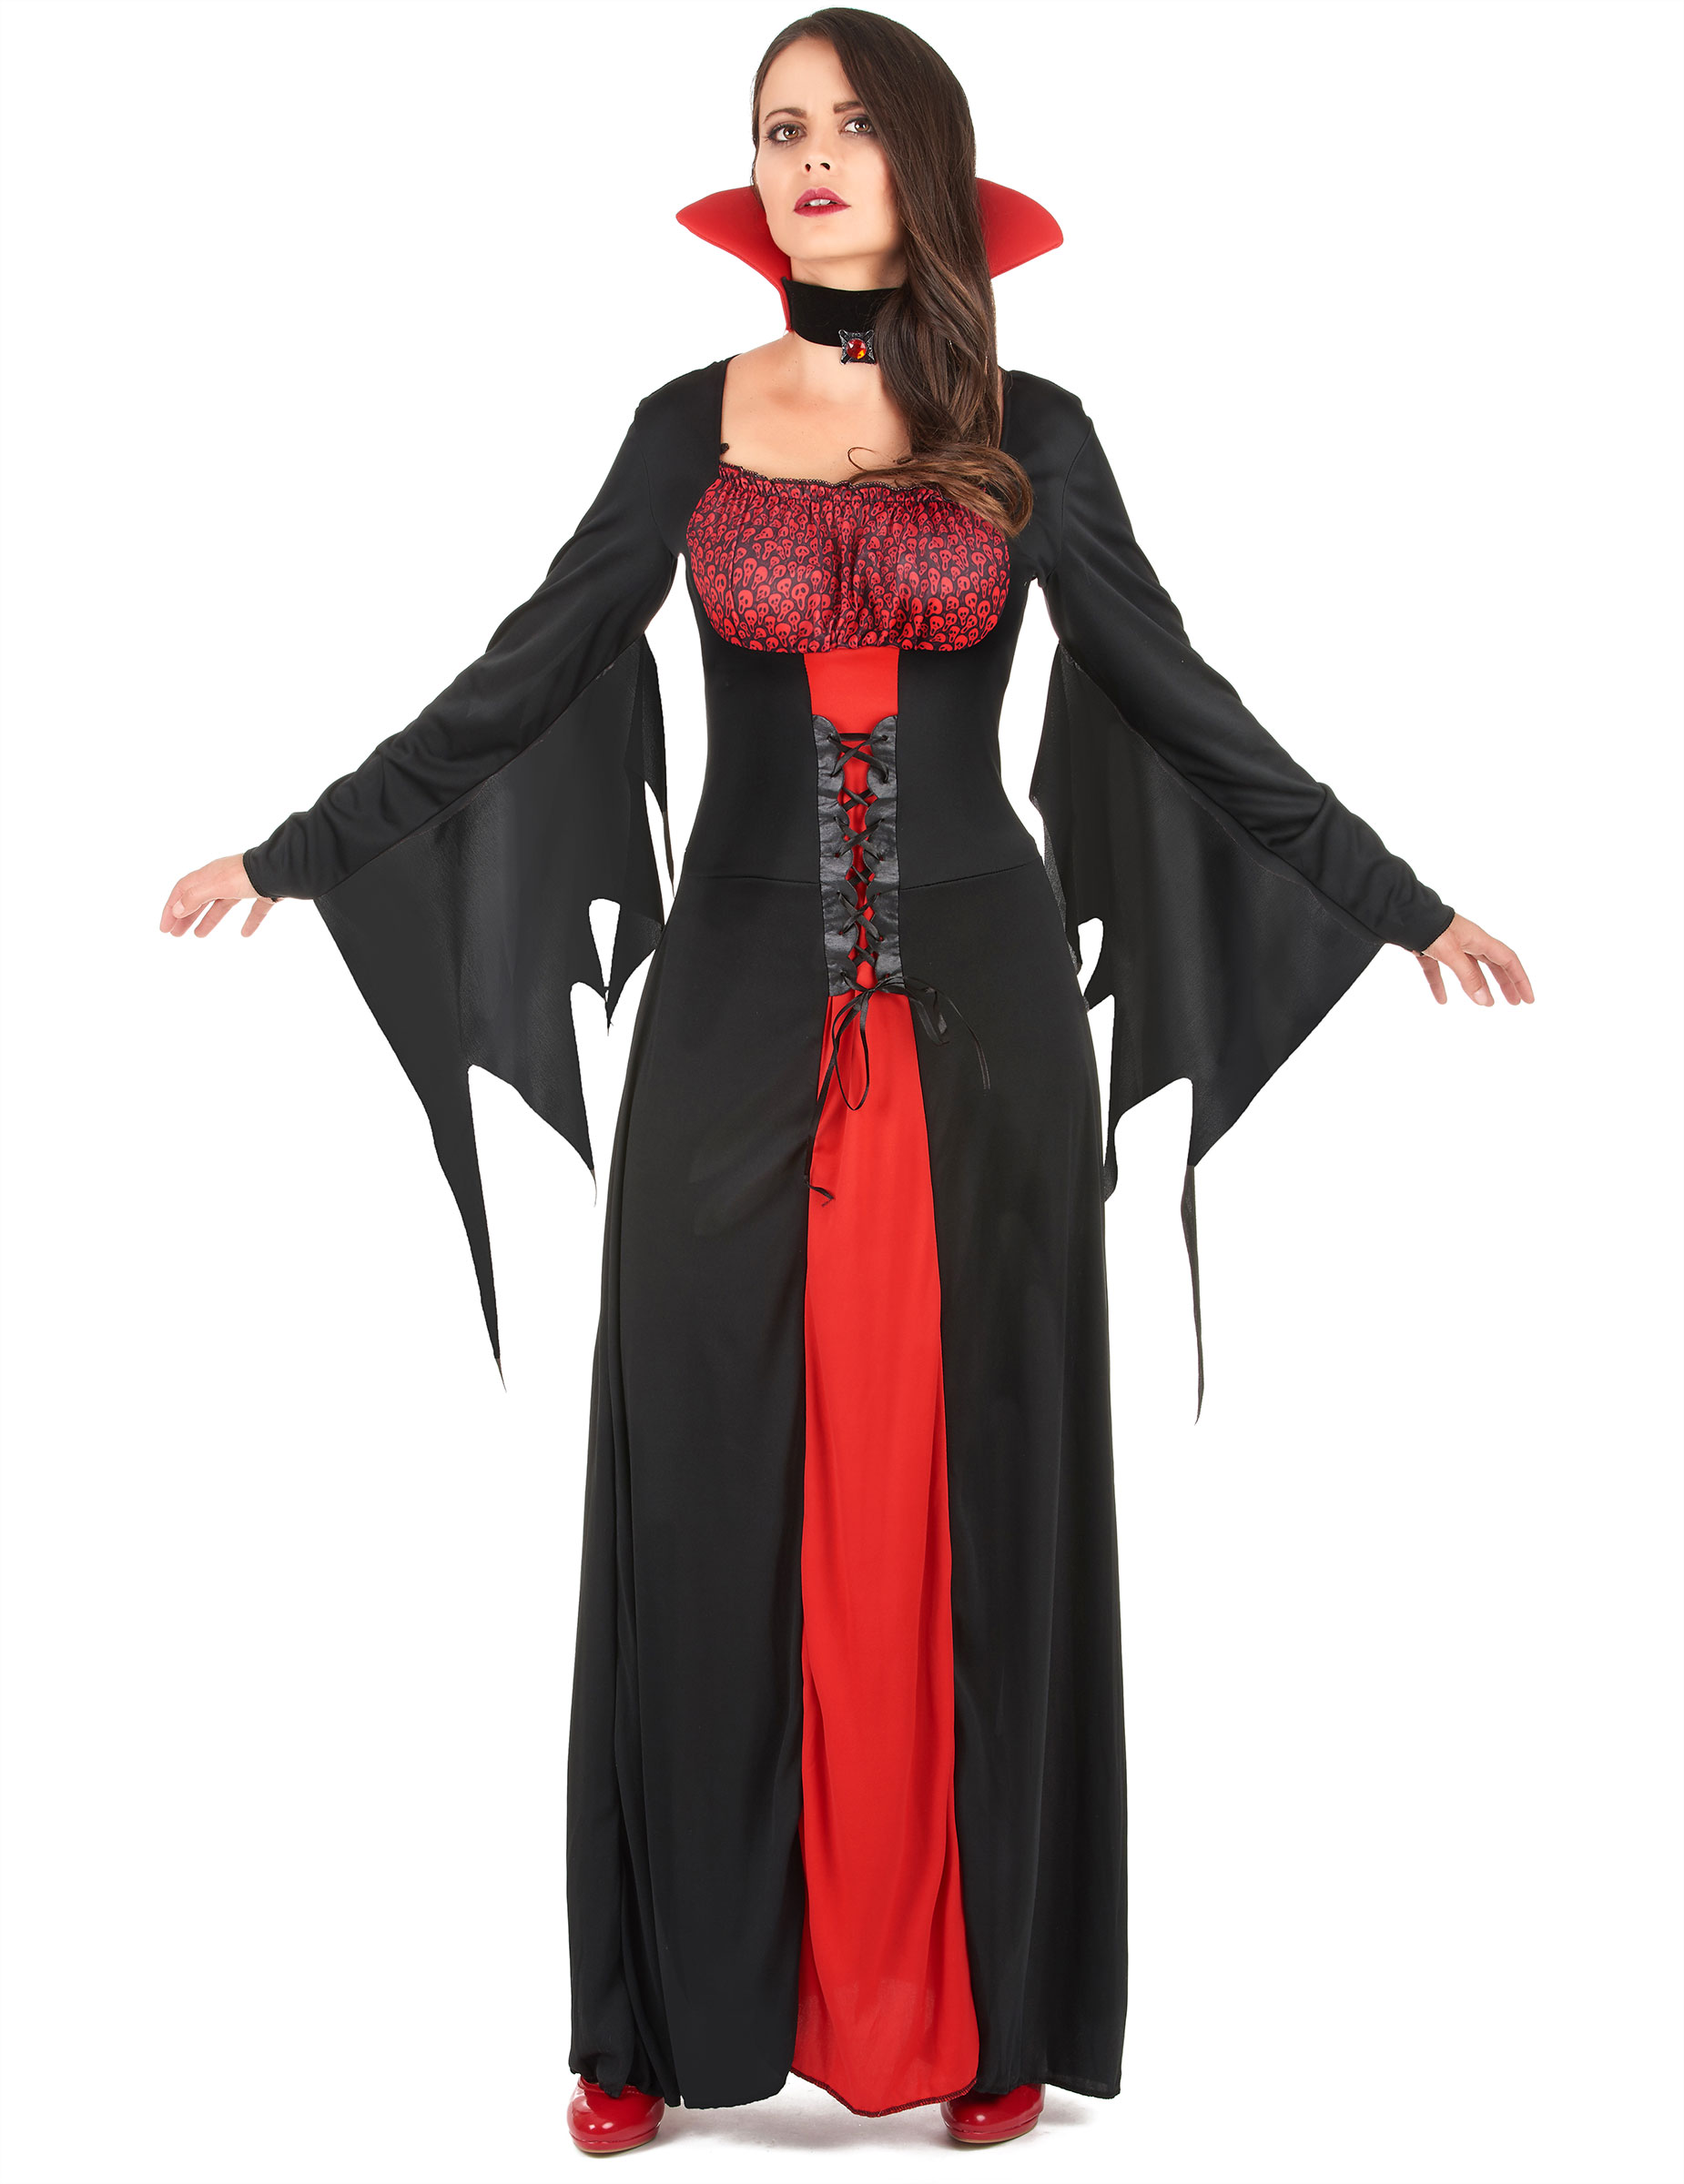 D guisement halloween - Deguisement halloween adulte ...